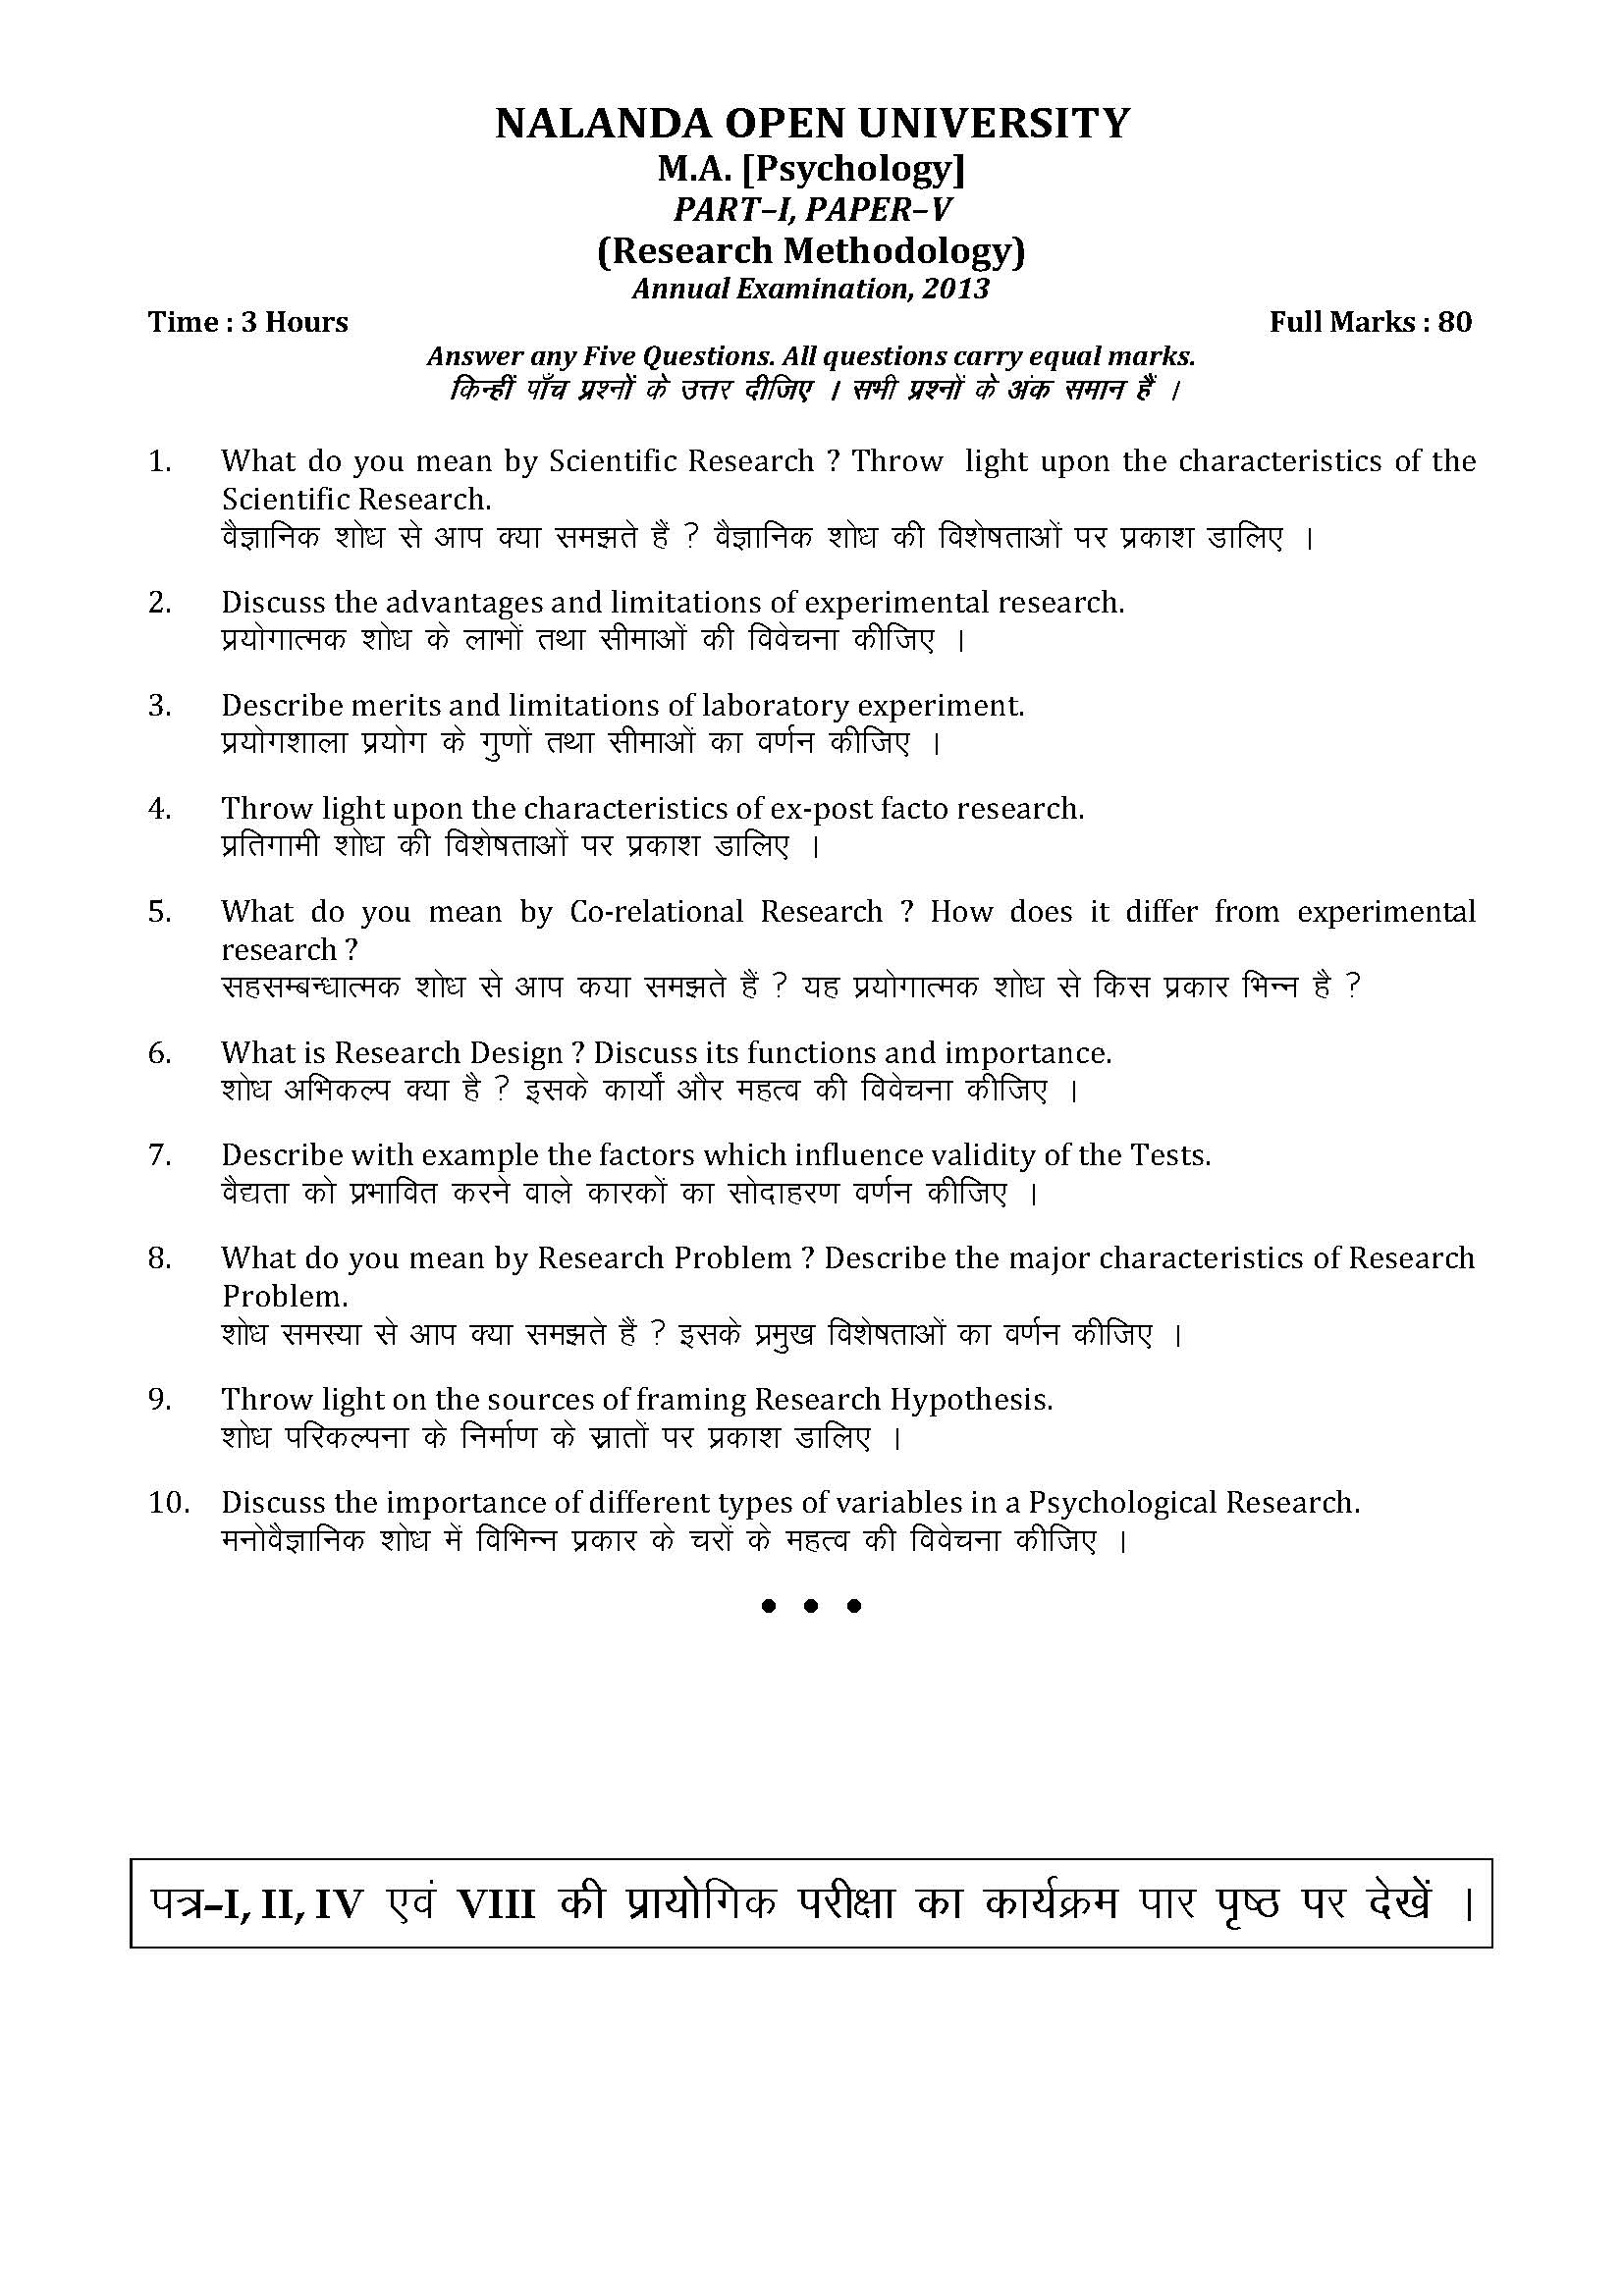 007 Ma Psychology Research Methodology Part I Paper V Dreaded Pdf Question For Phd Example Sample Full